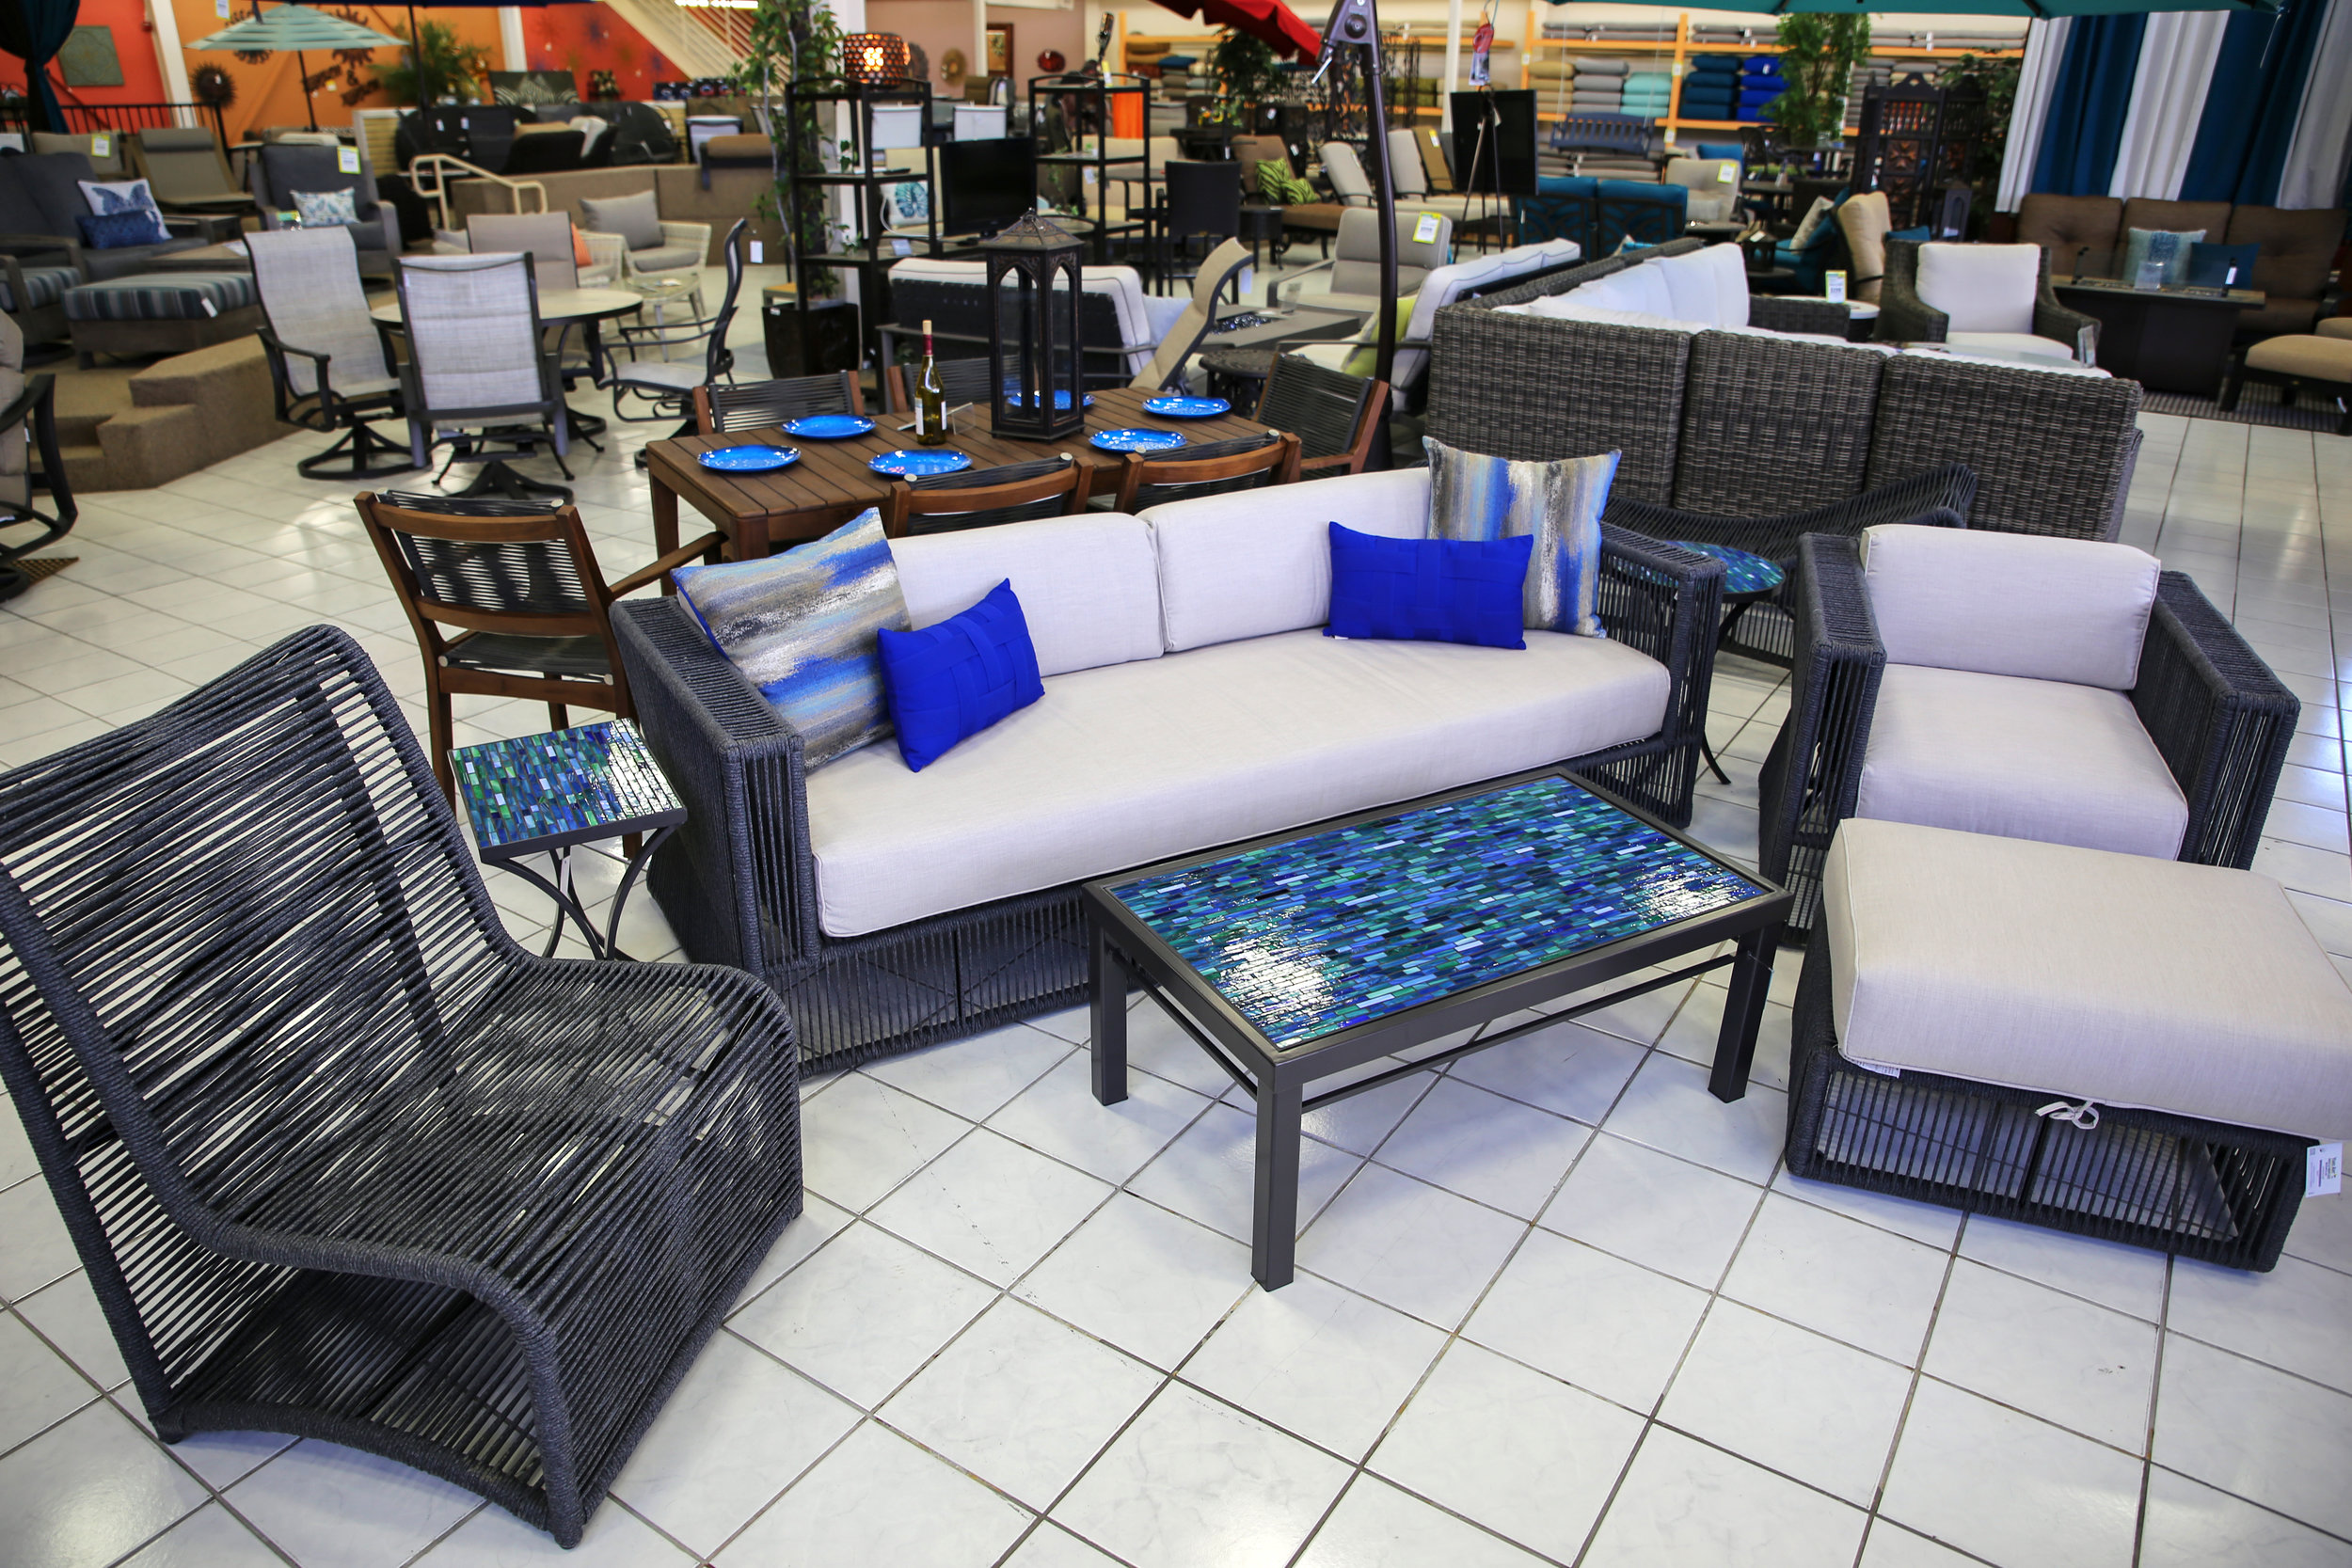 Milano Stock Set with Elaine Smith Pillows and KNF Tables Lounge Chair sofa and Cushionless Chair